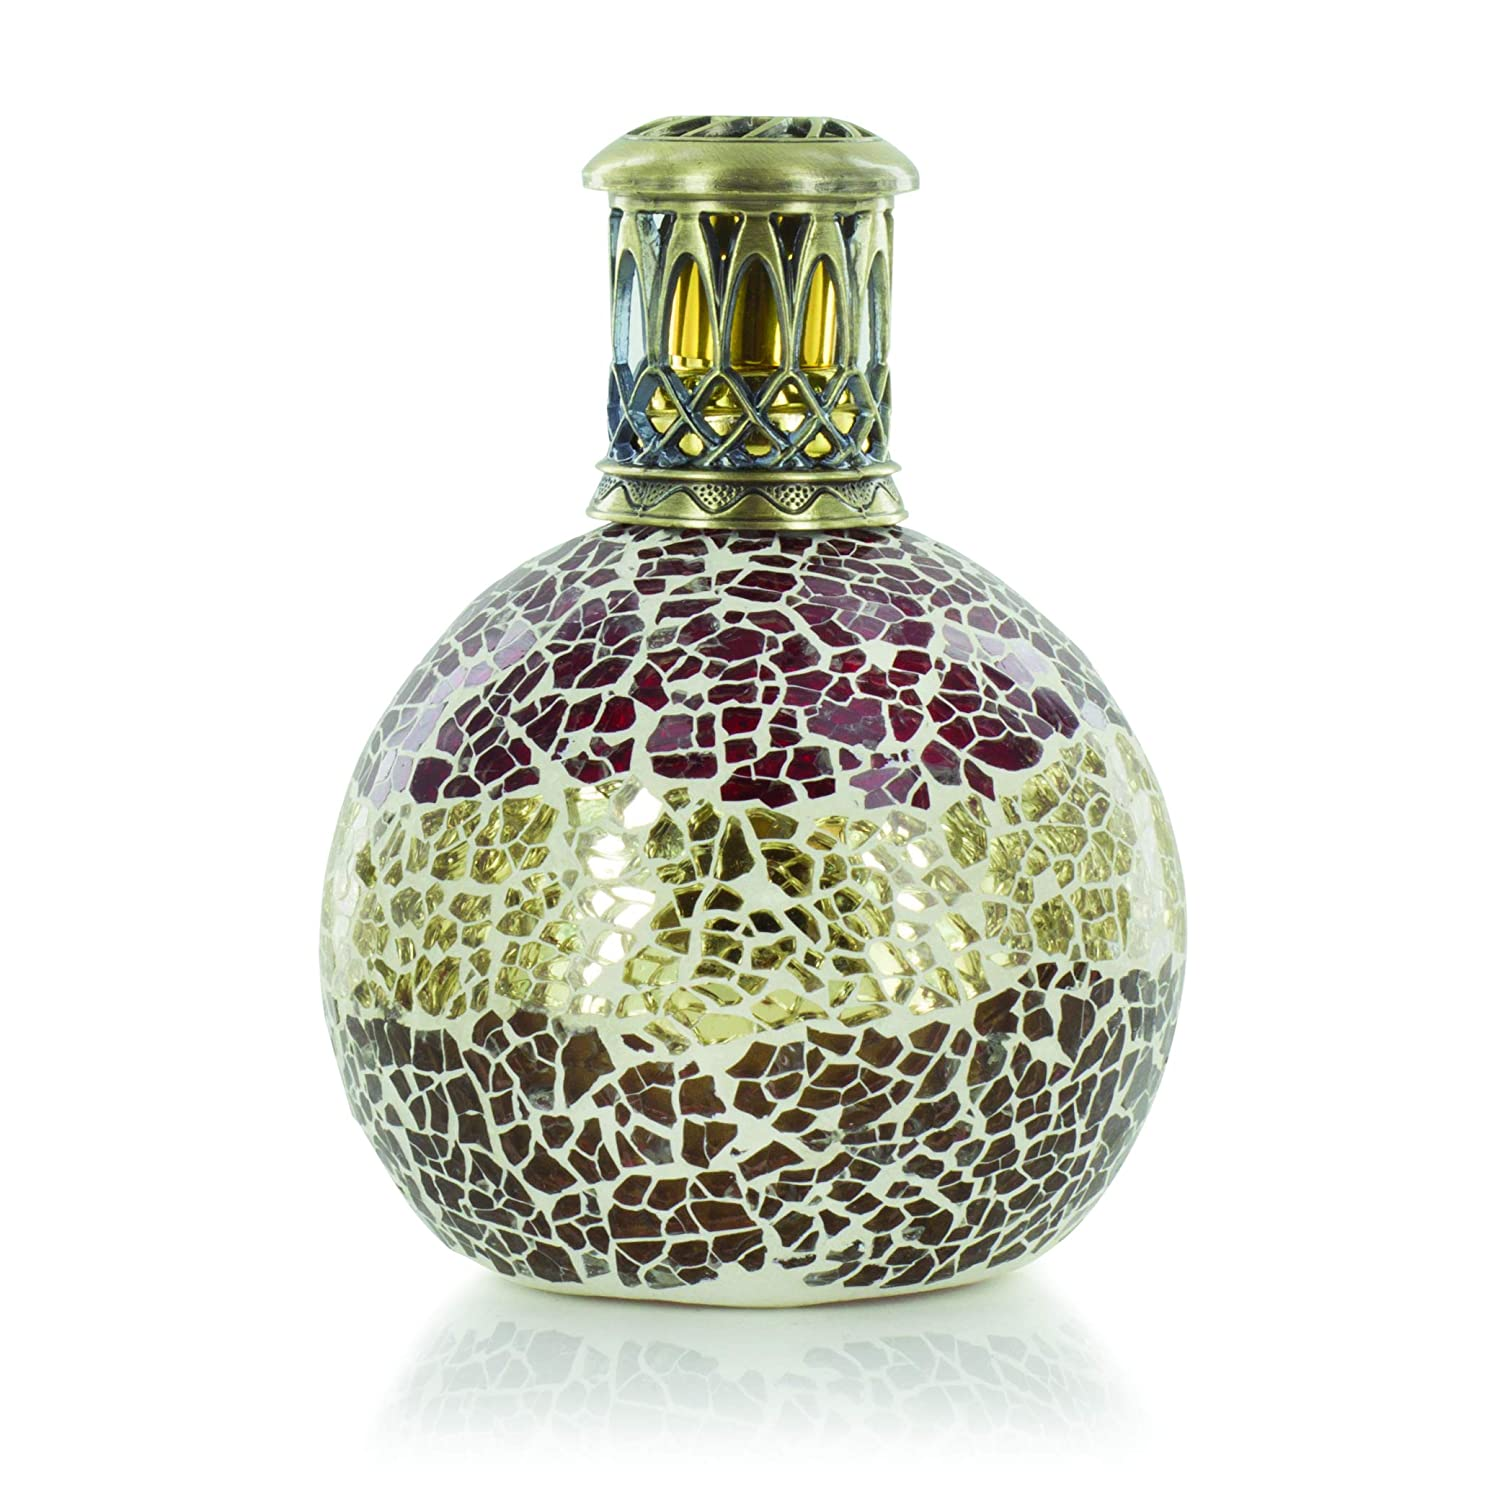 Ashleigh & Burwood - Premium Fragrance Lamp Small - Tectonic PFL644